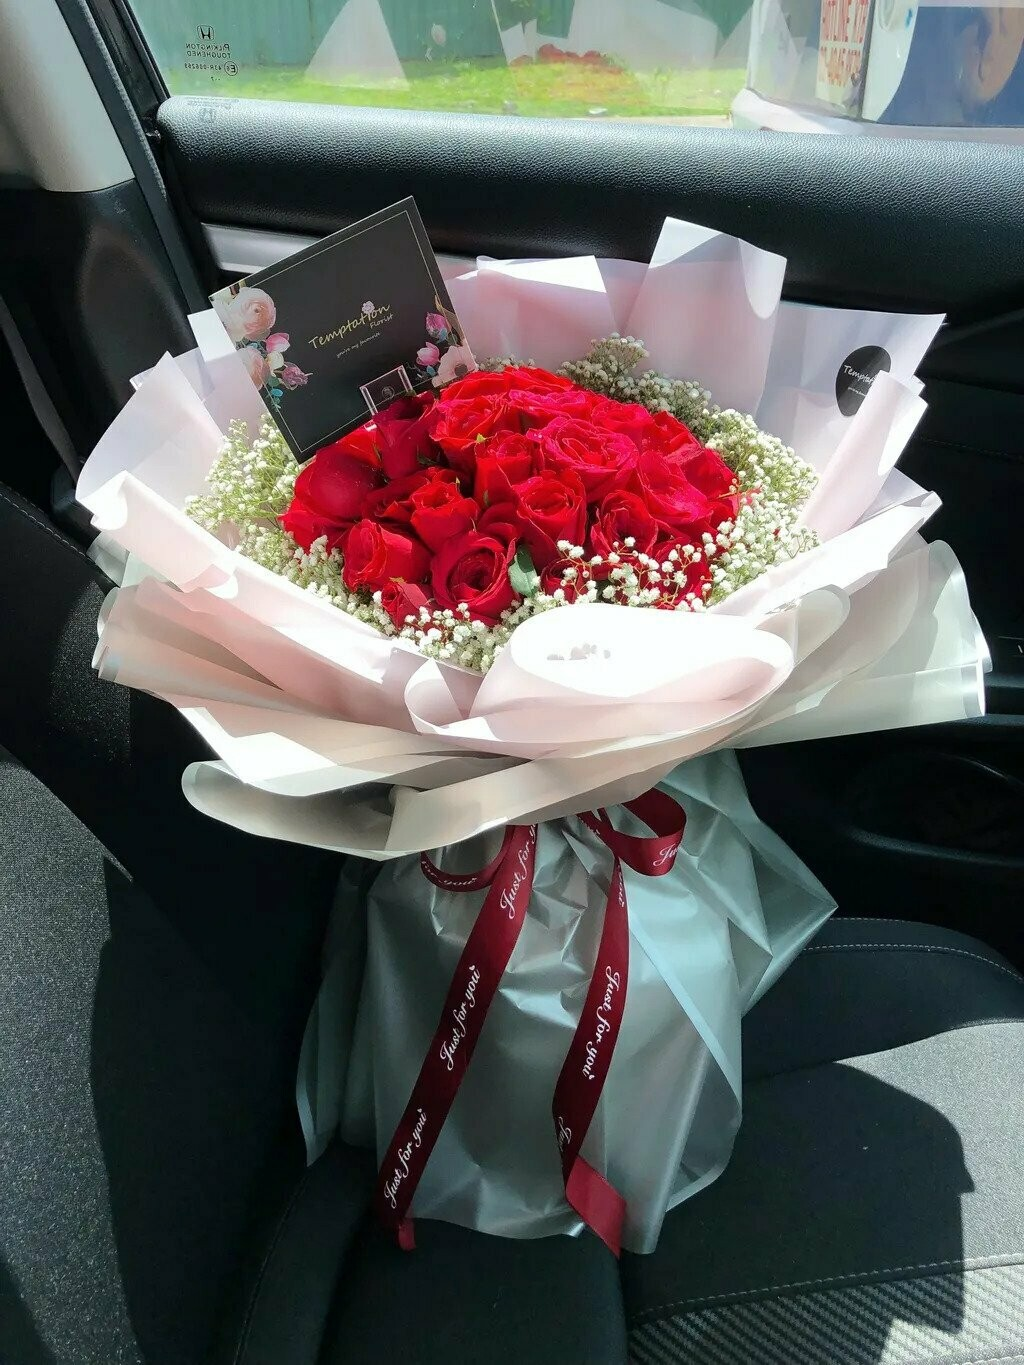 Oh Babe (By: Temptation Florist from Seremban)